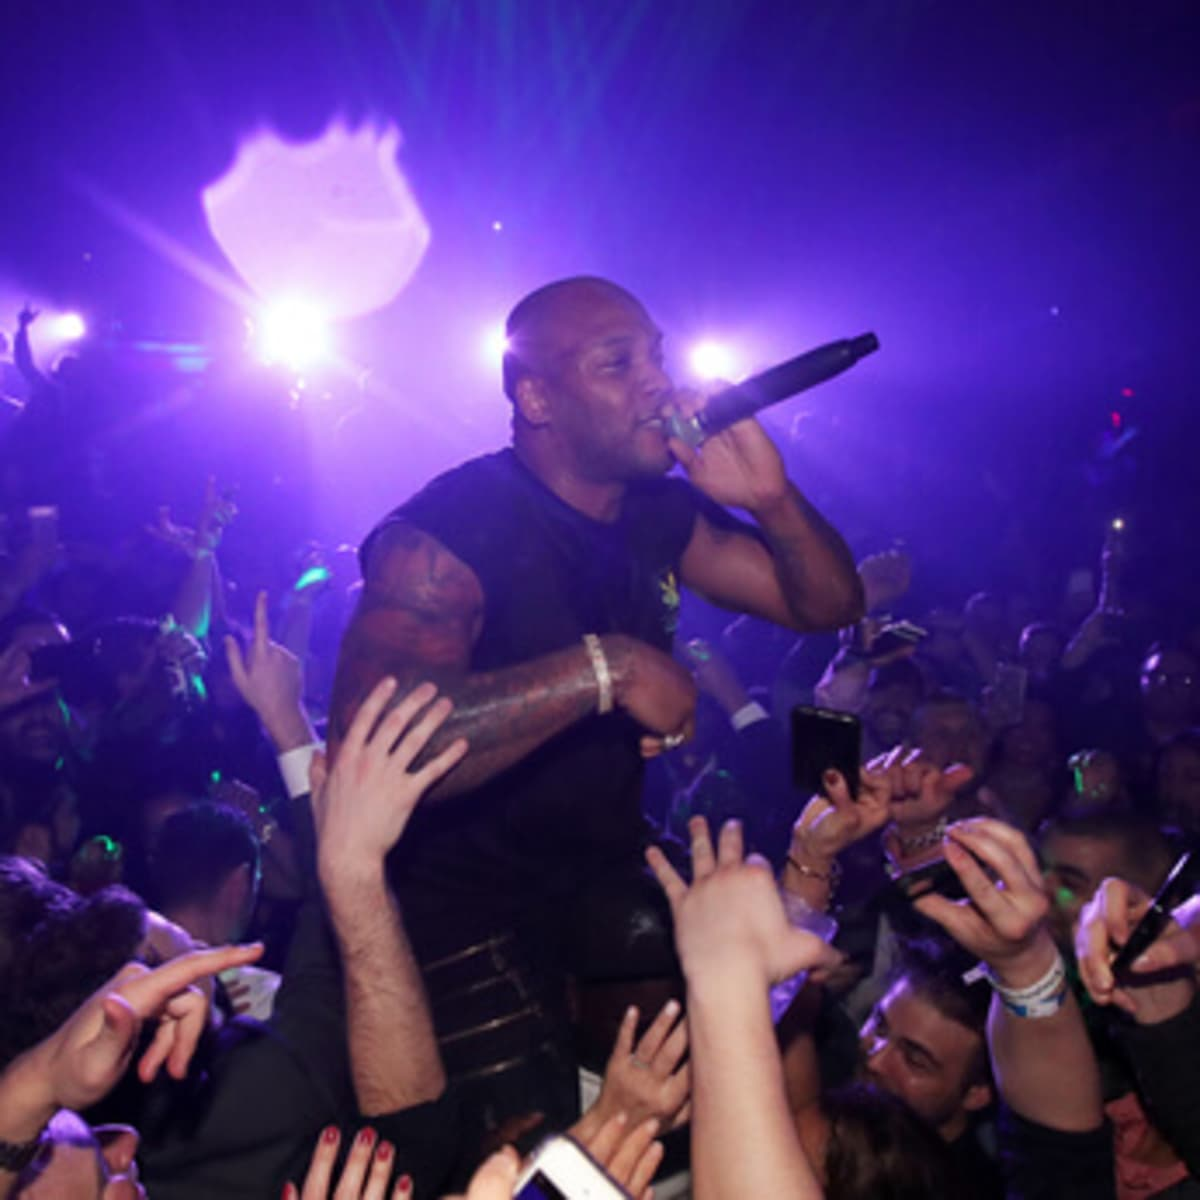 Houston, Playboy and Tao Super Bowl Party, Jan 2017, Recording artist Flo Rida performs onstage